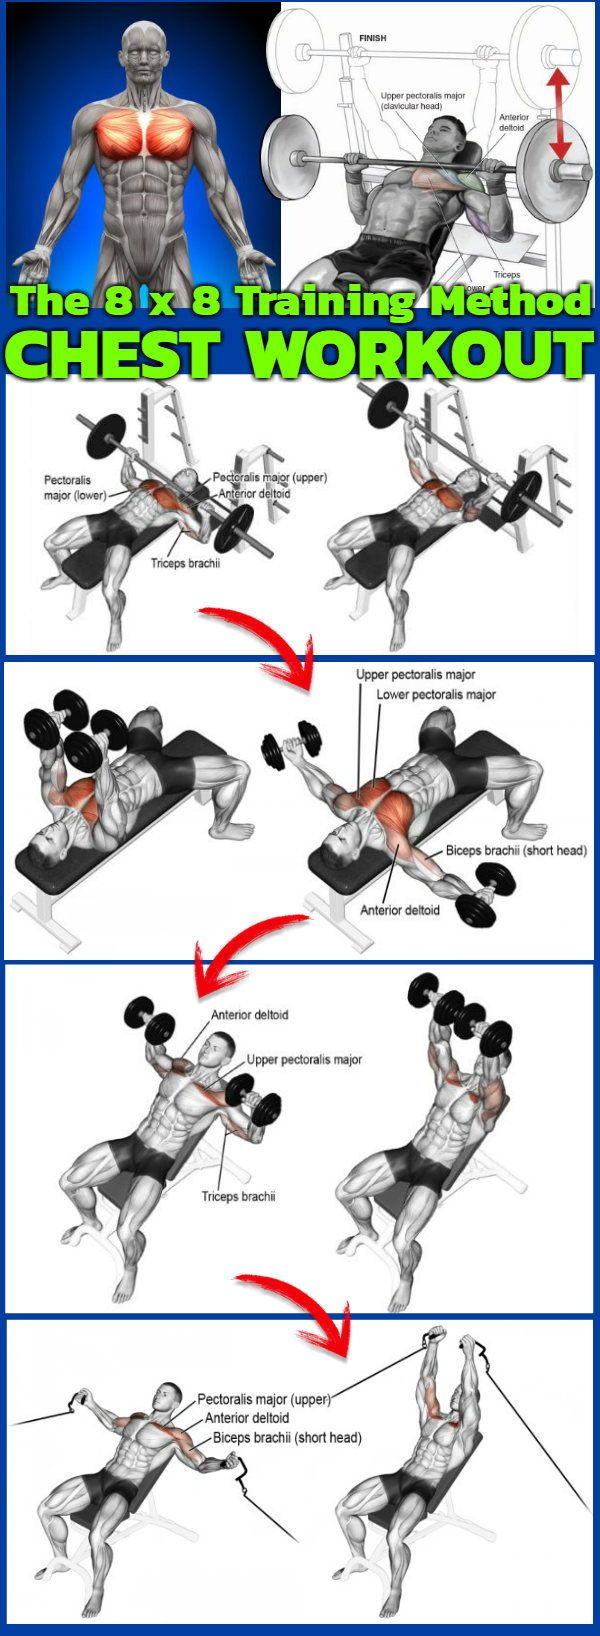 8 x 8 Method For Chest Training – Get Lean-Rid Fat